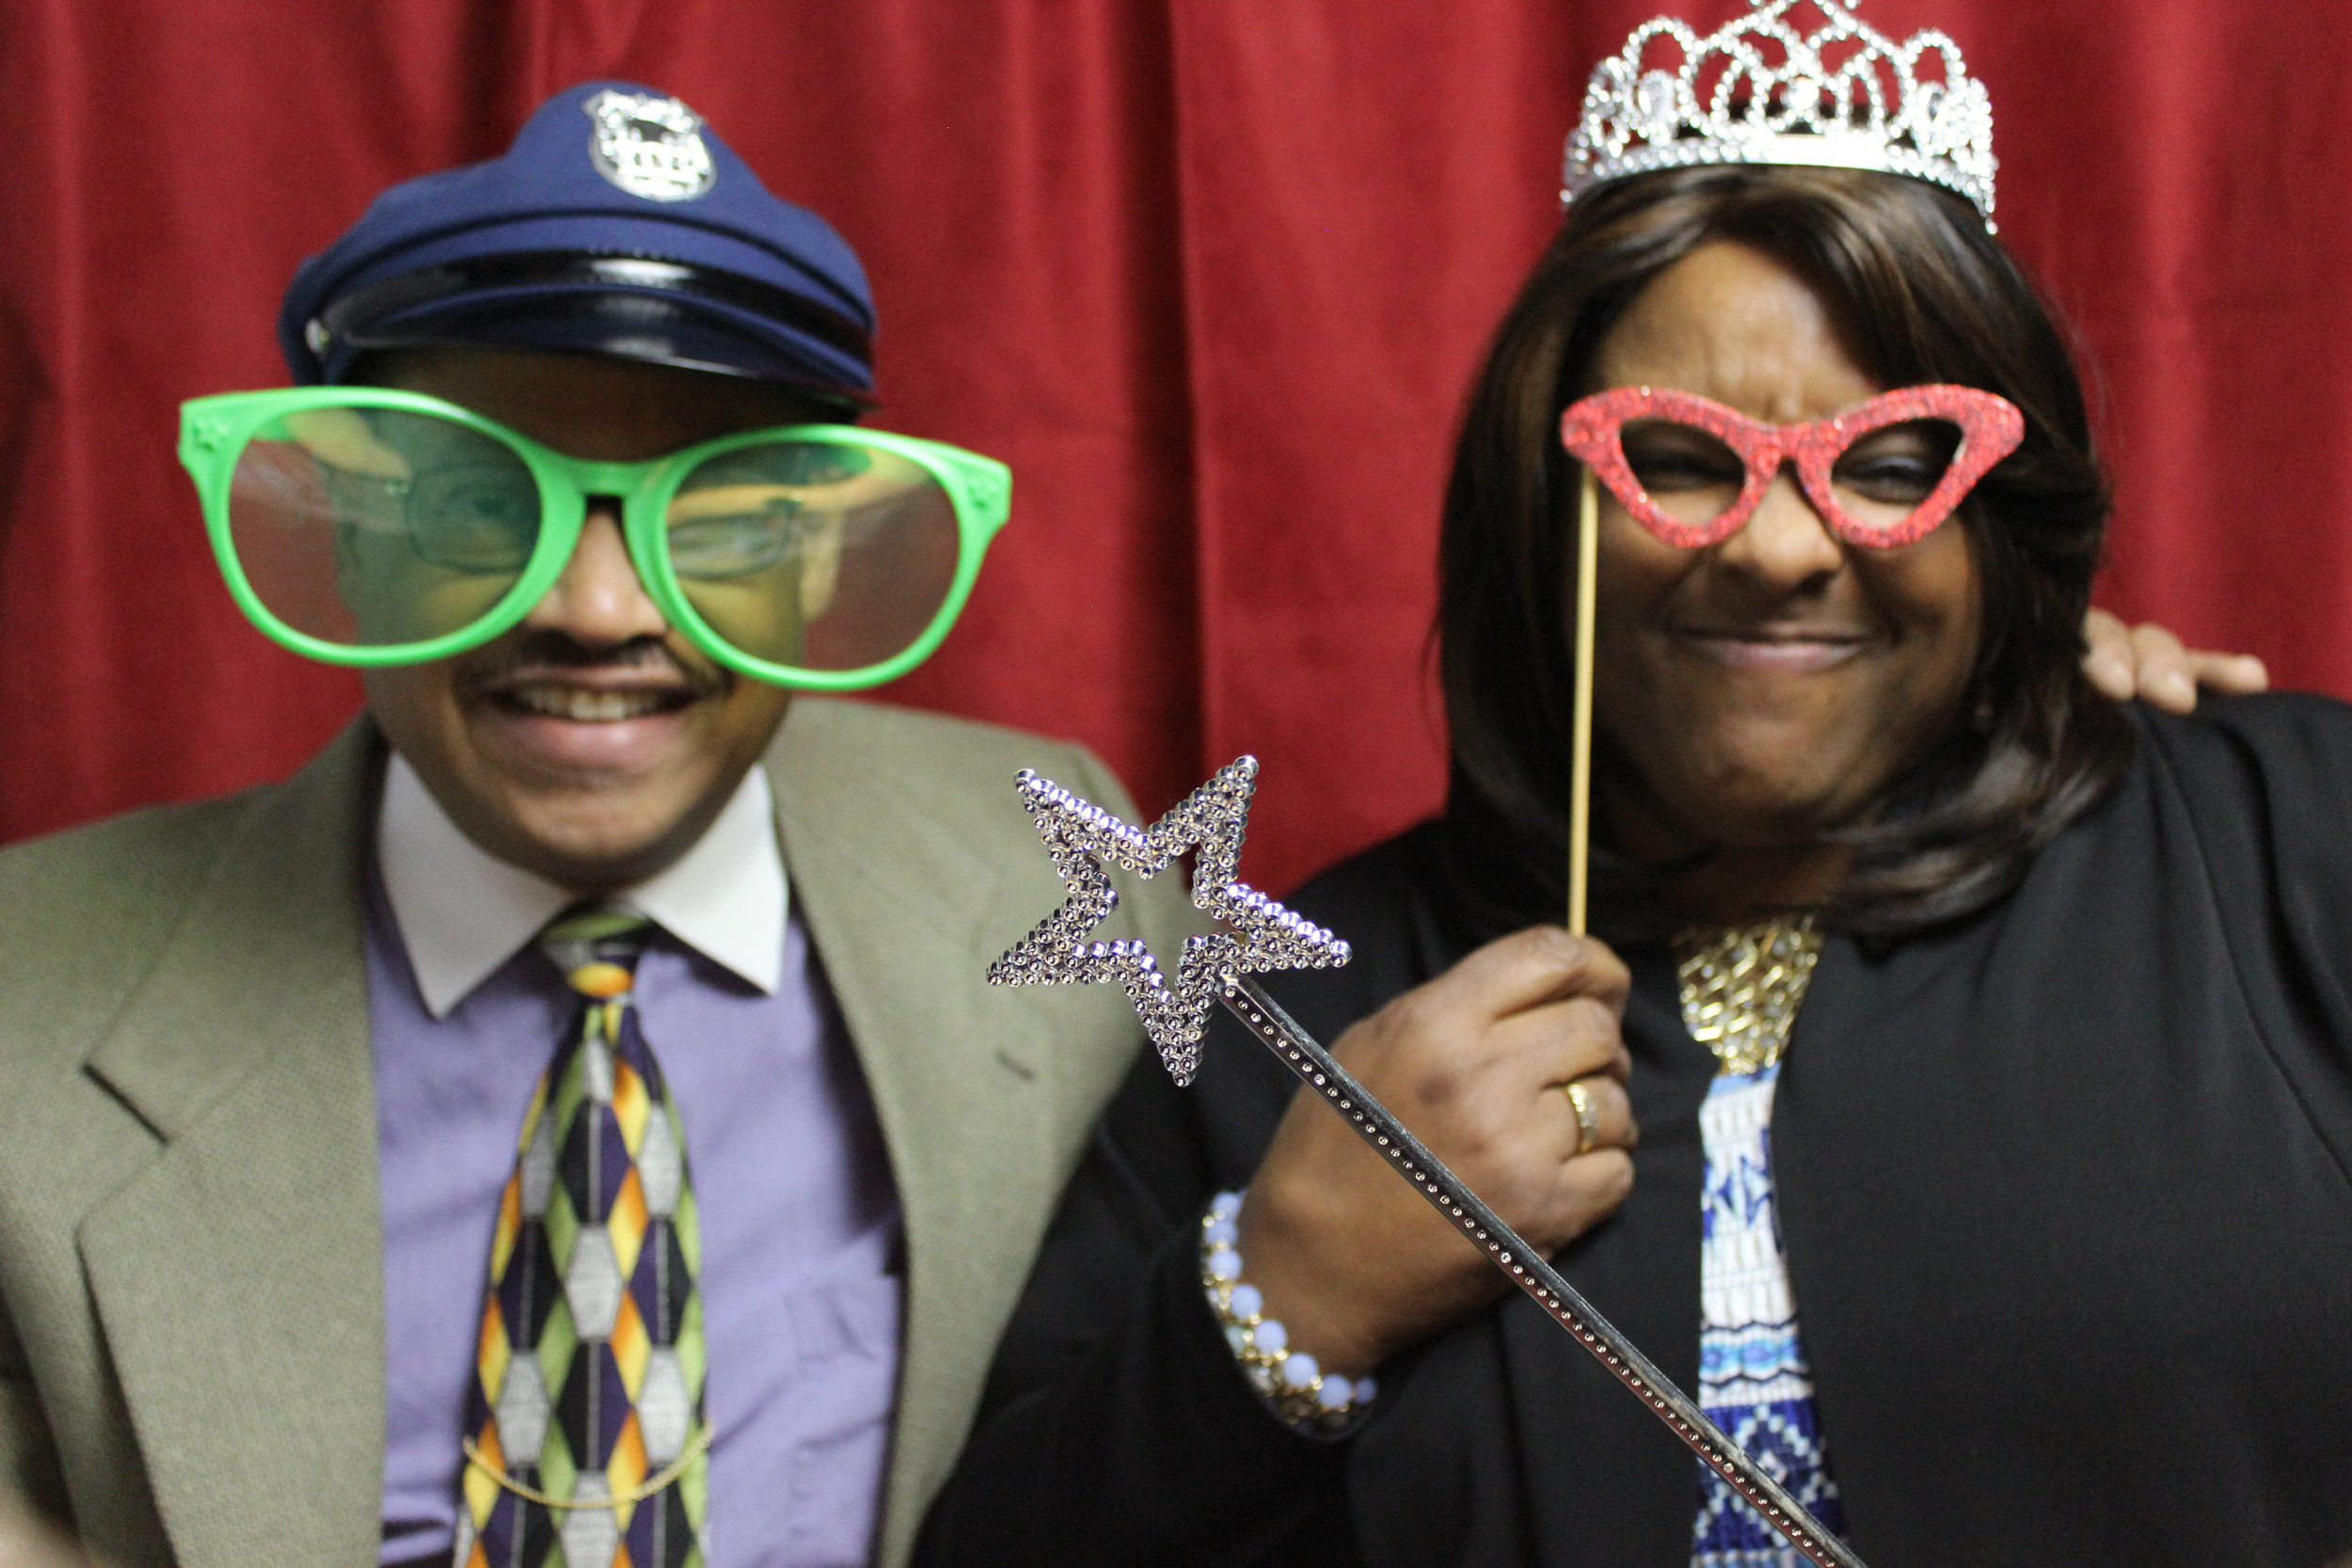 Ann-Marie & Maurice Photo Booth Wedding (224).jpg